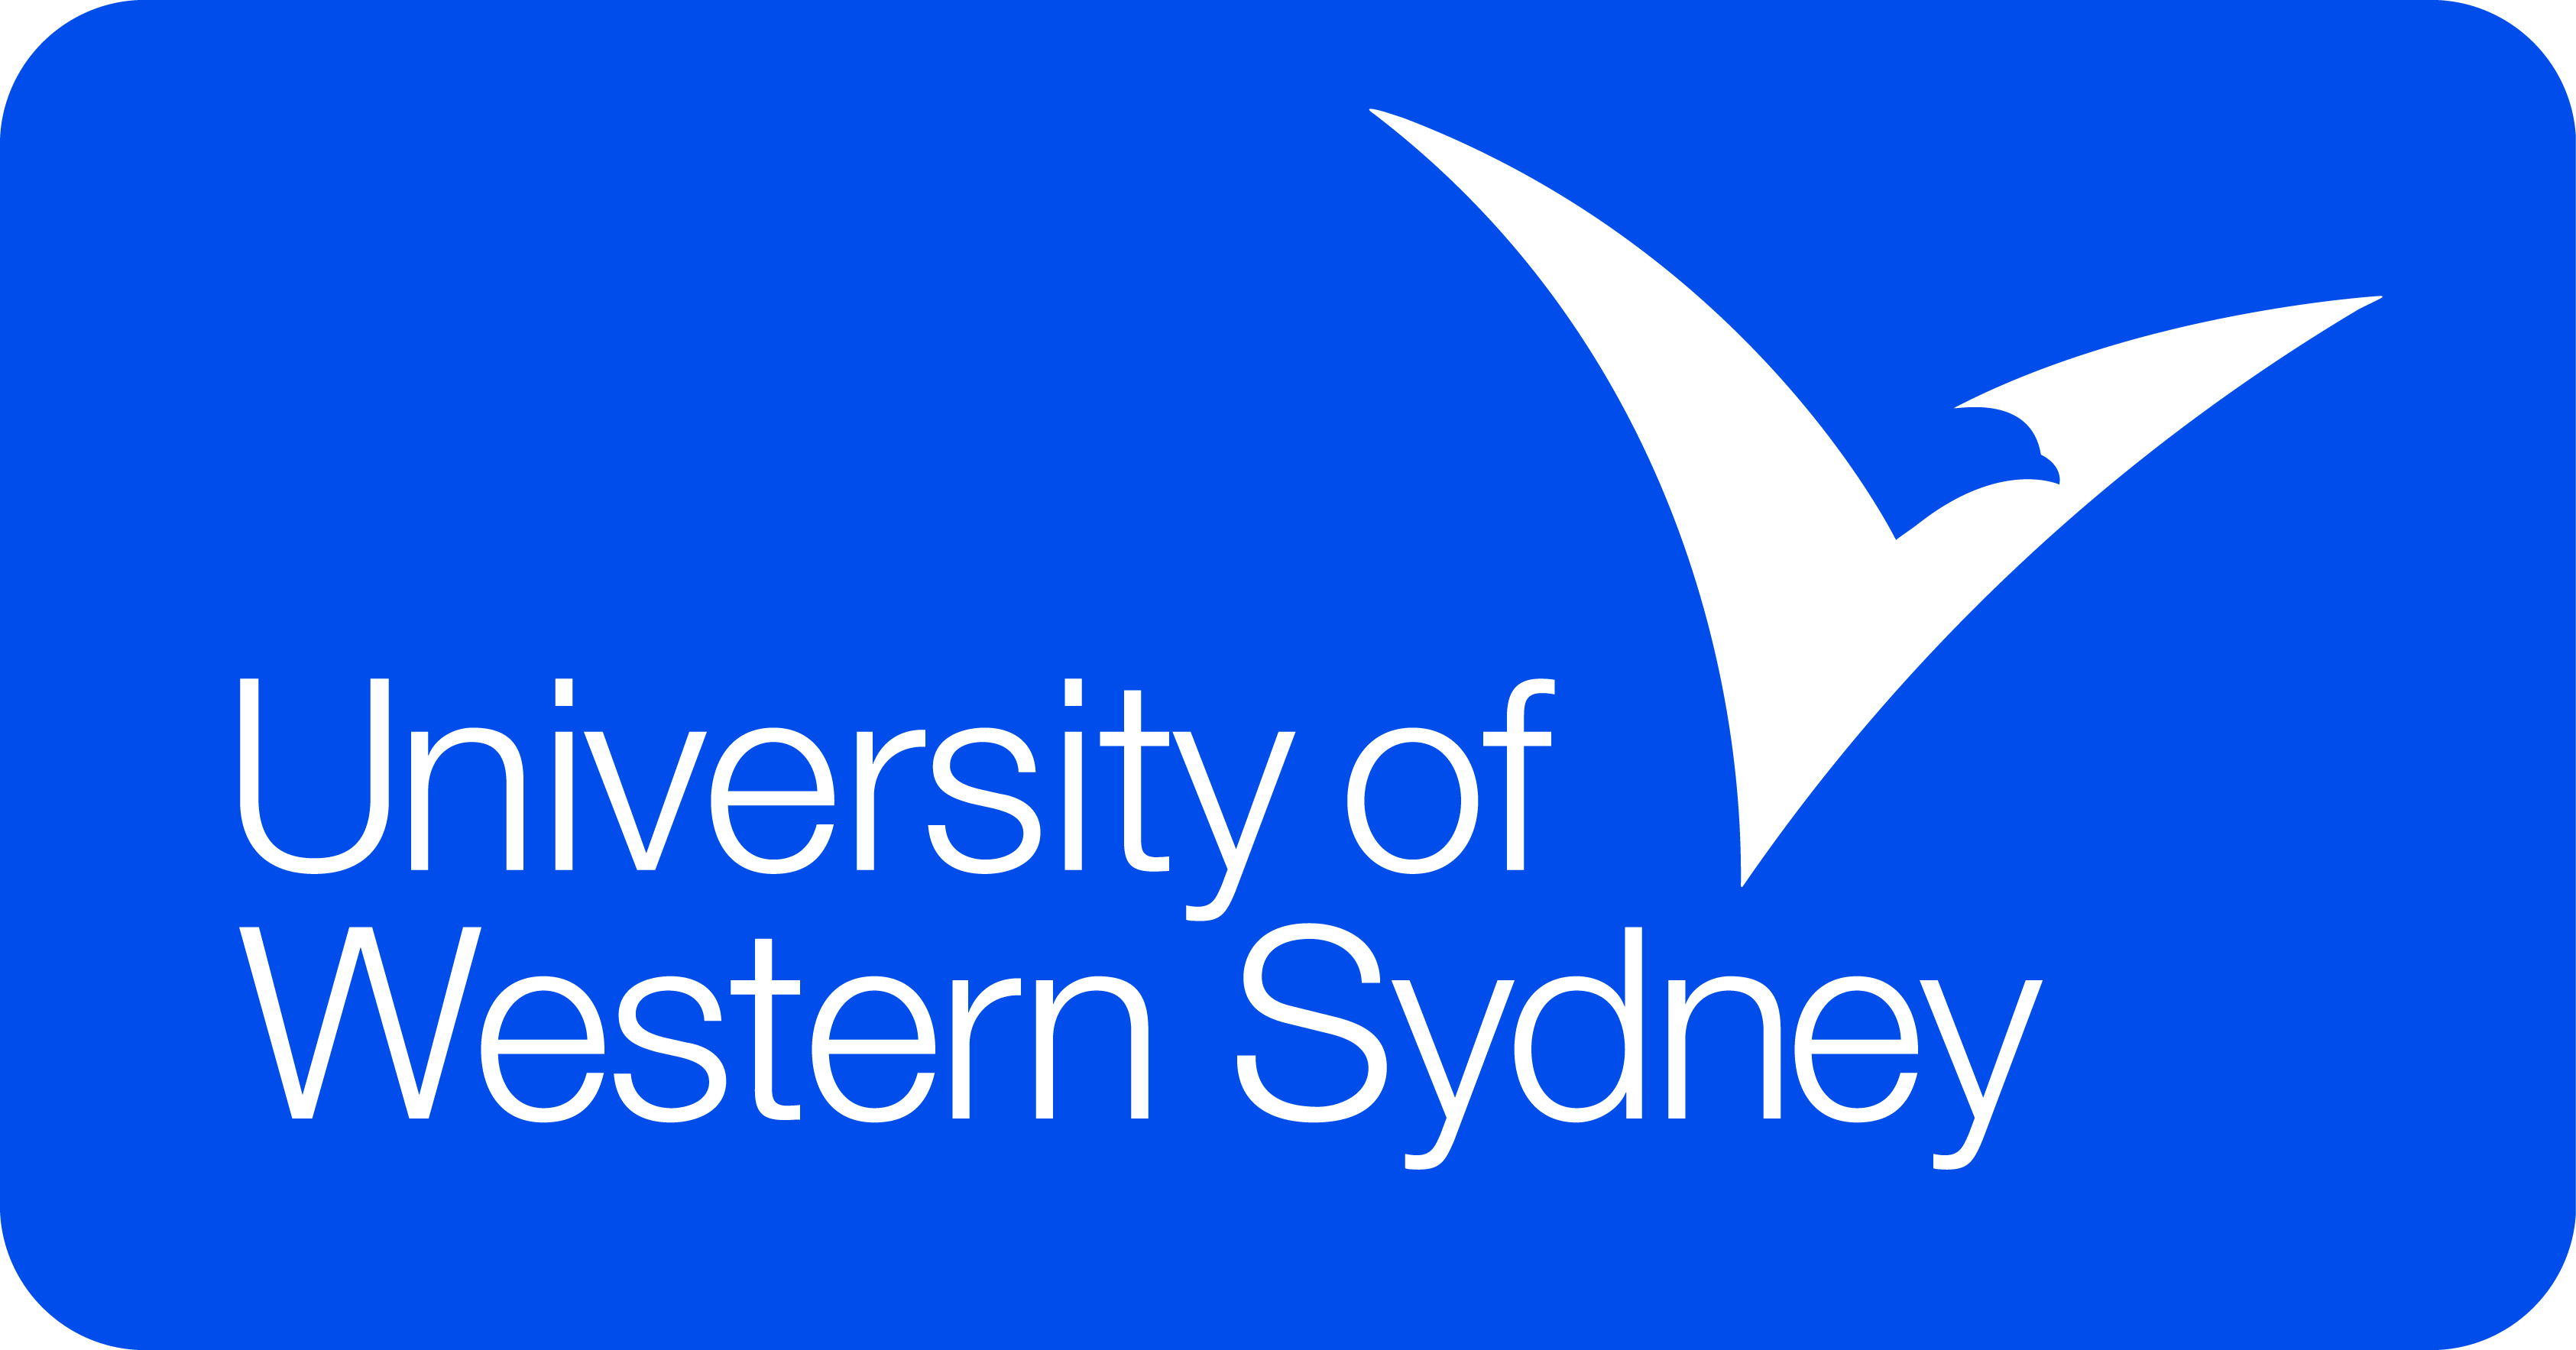 Construction Management school of physics university of sydney